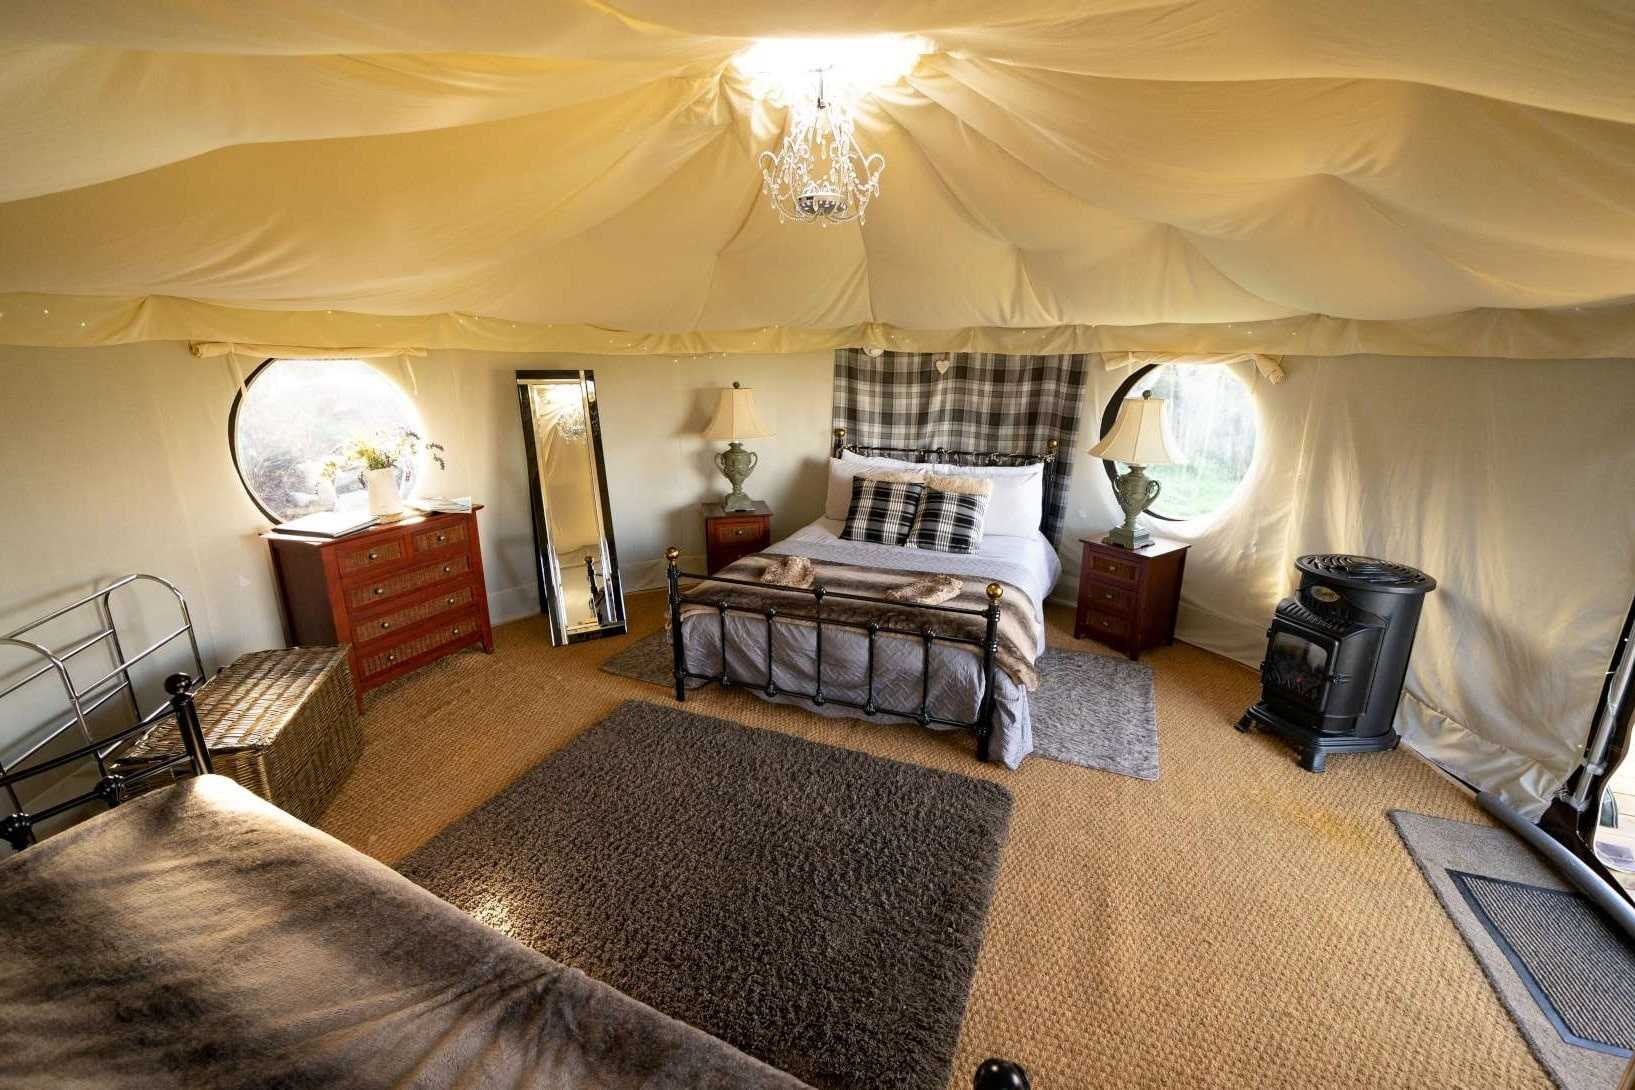 bed-and-living-area-in-snowdonia-farm-holiday-nomadic-yurts